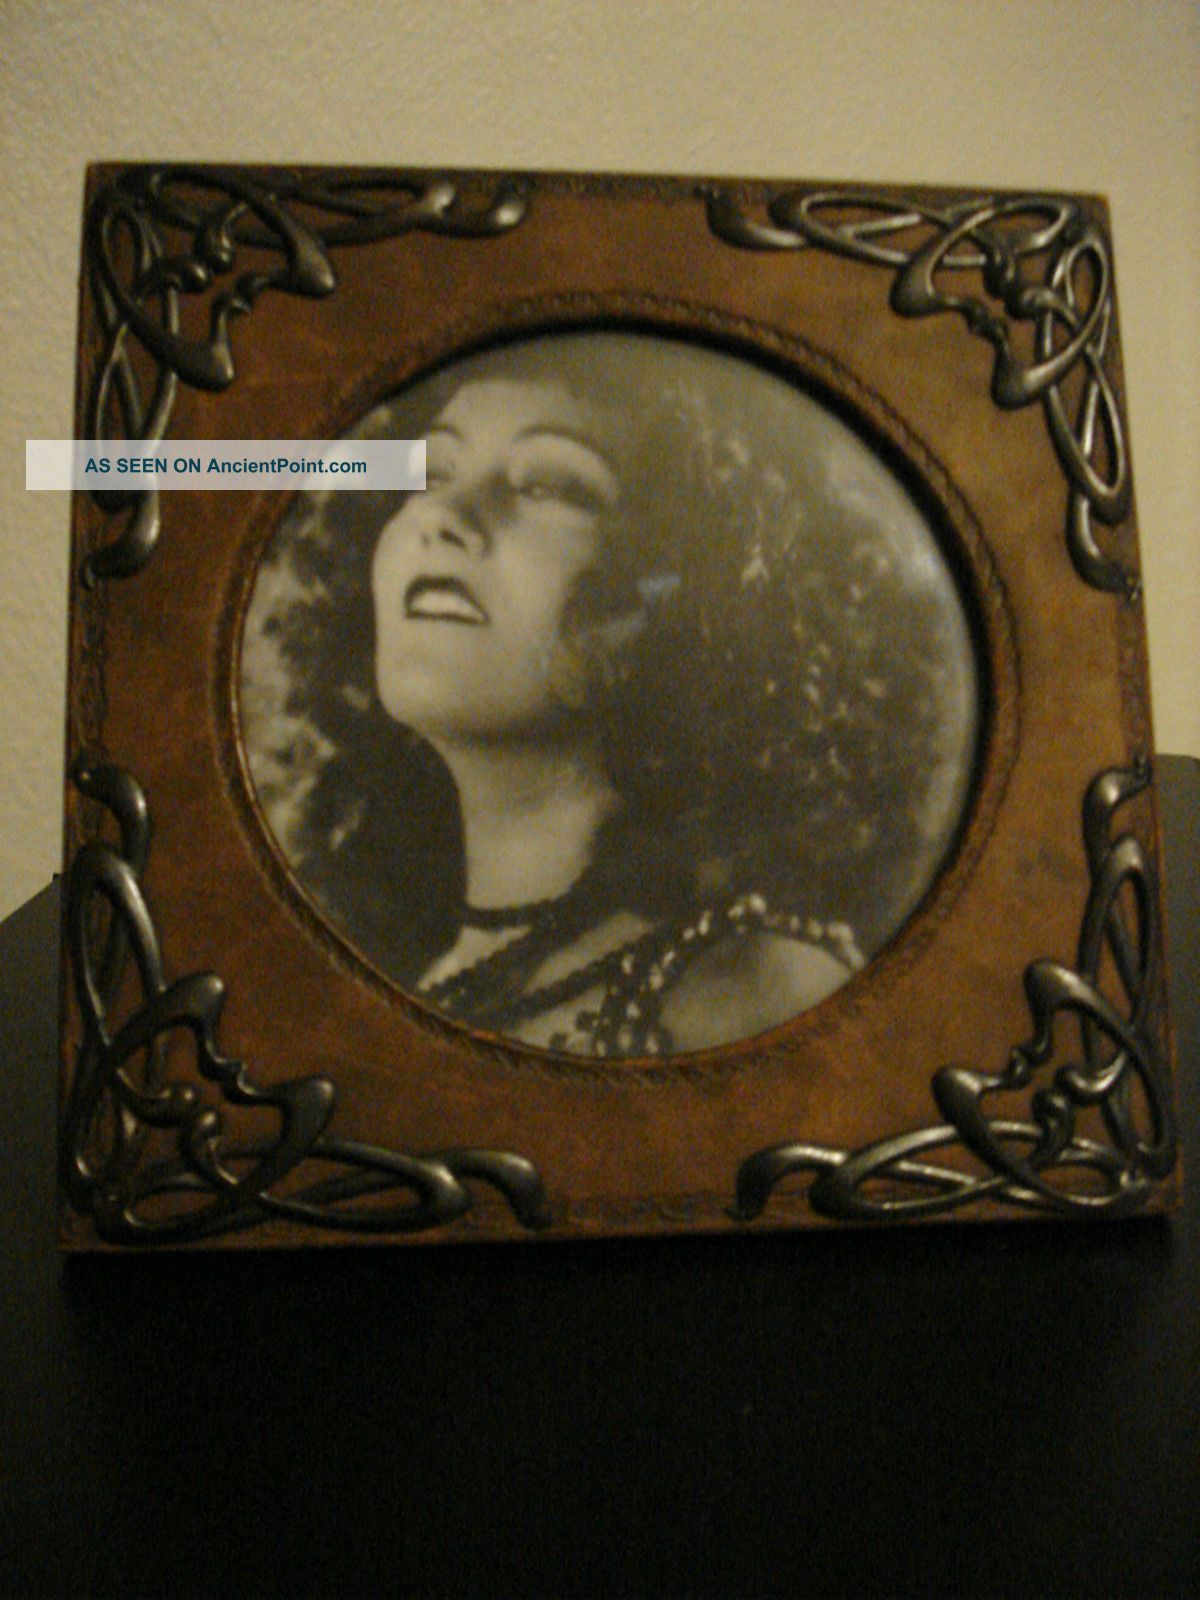 Exquisite Rare,  Art Nouveau,  Arts & Crafts Photo Frame Art Nouveau photo